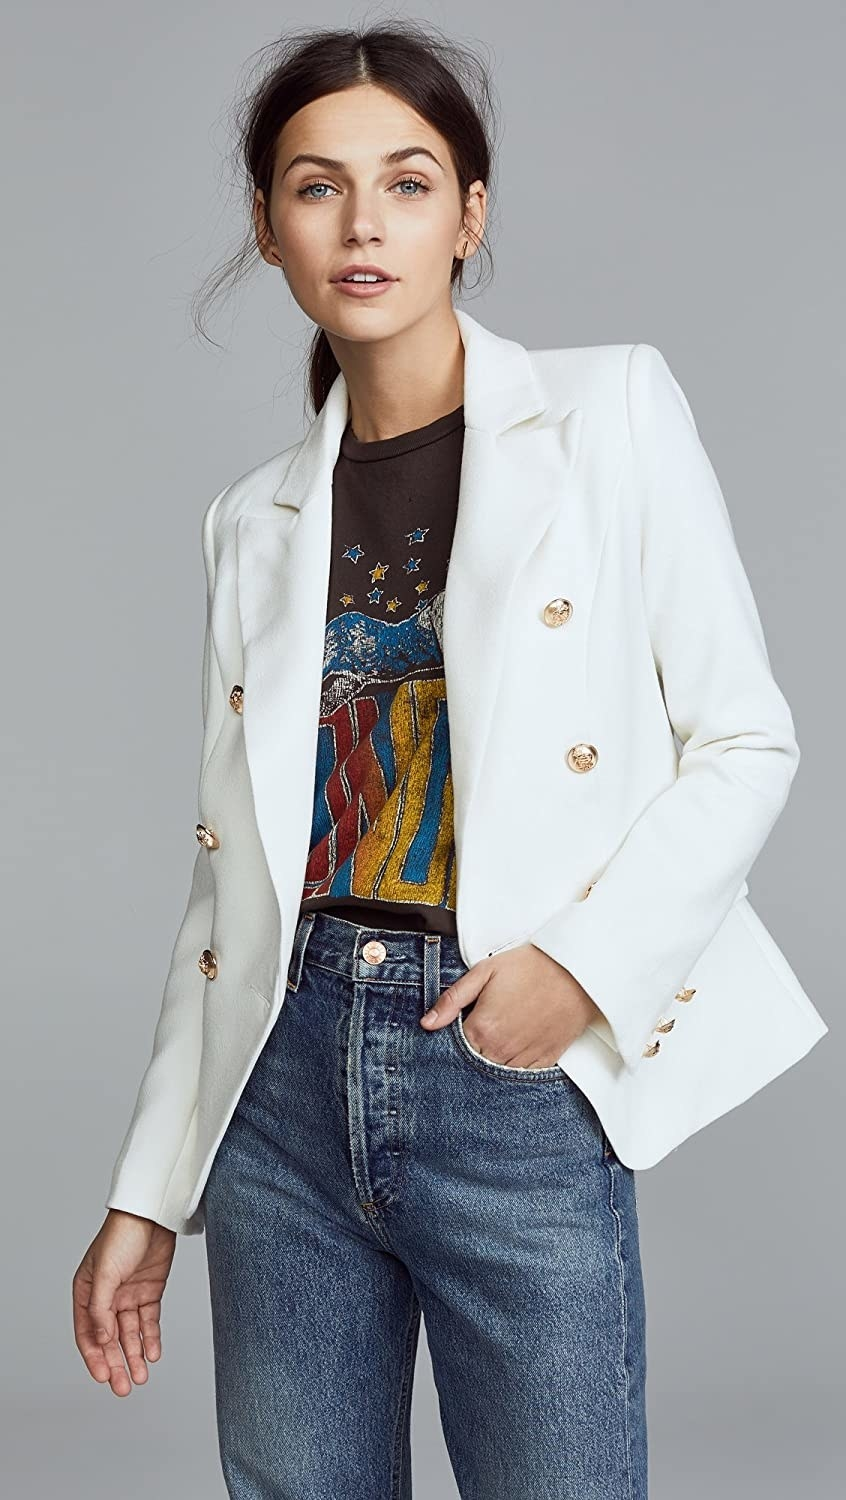 Person wearing white blazer with gold buttons with jeans and a graphic tee